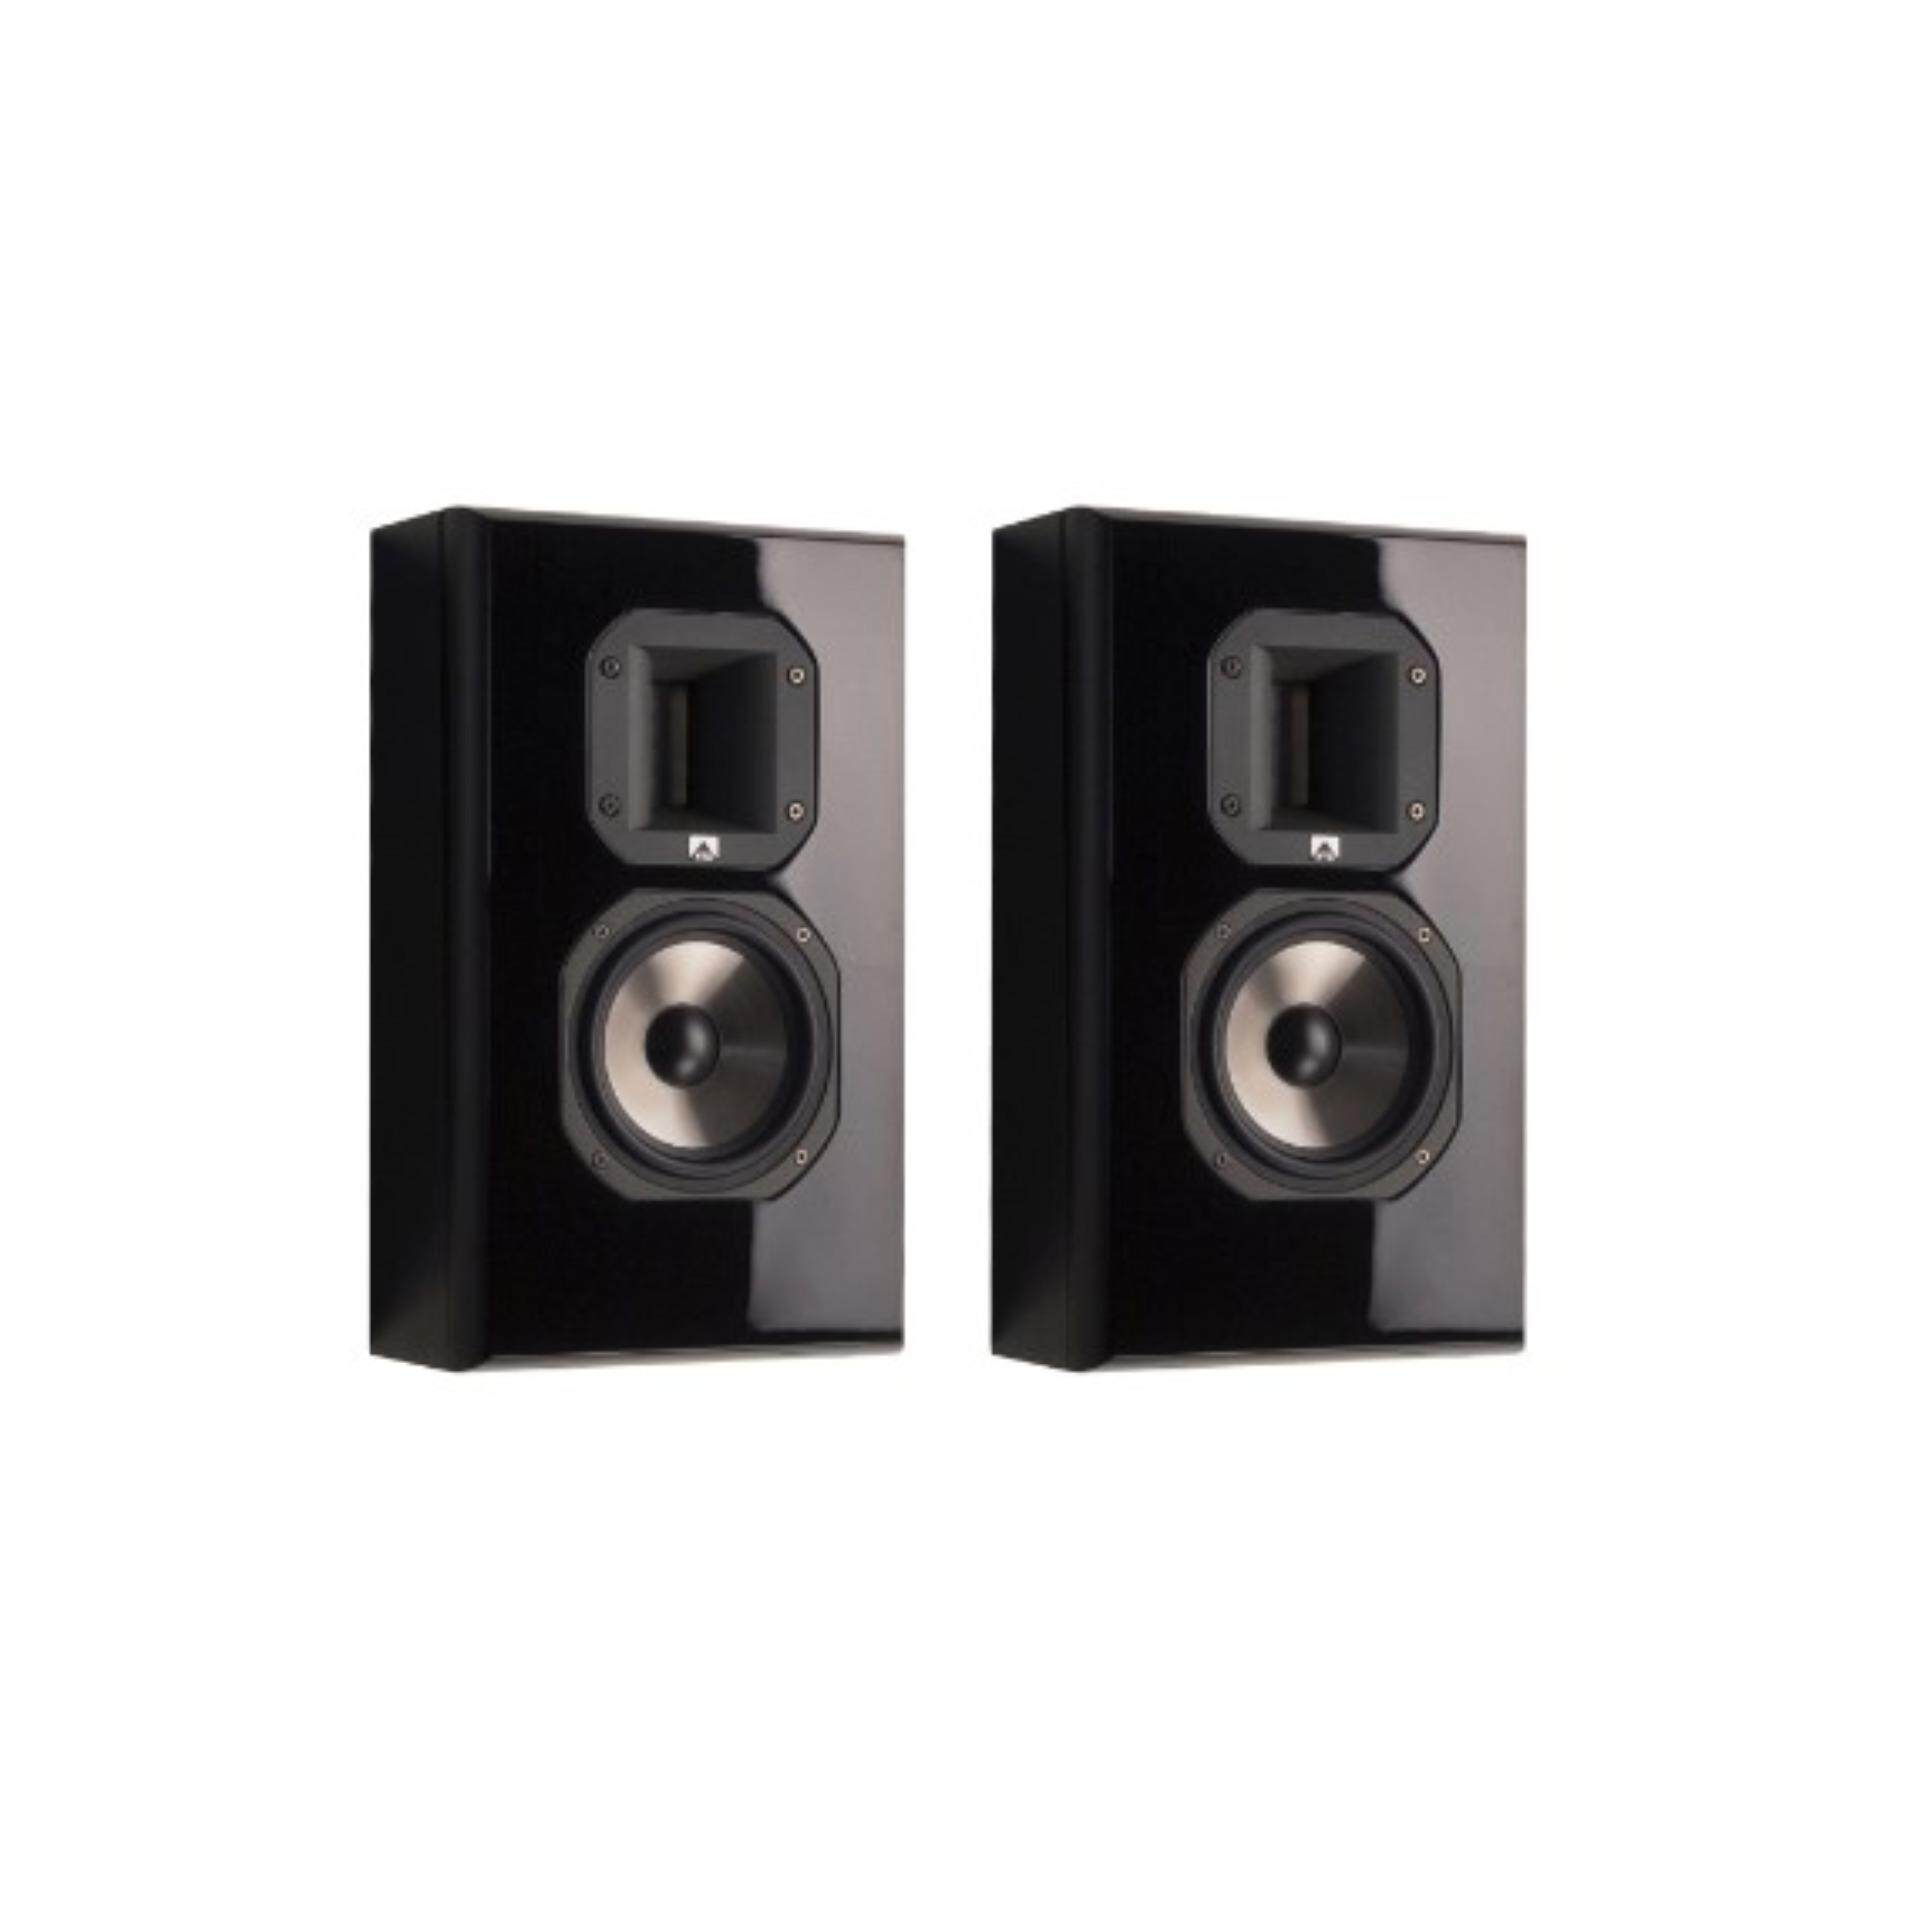 XTZ 95.22 Surround Speaker Slimline Wall Mounted Hifi AV